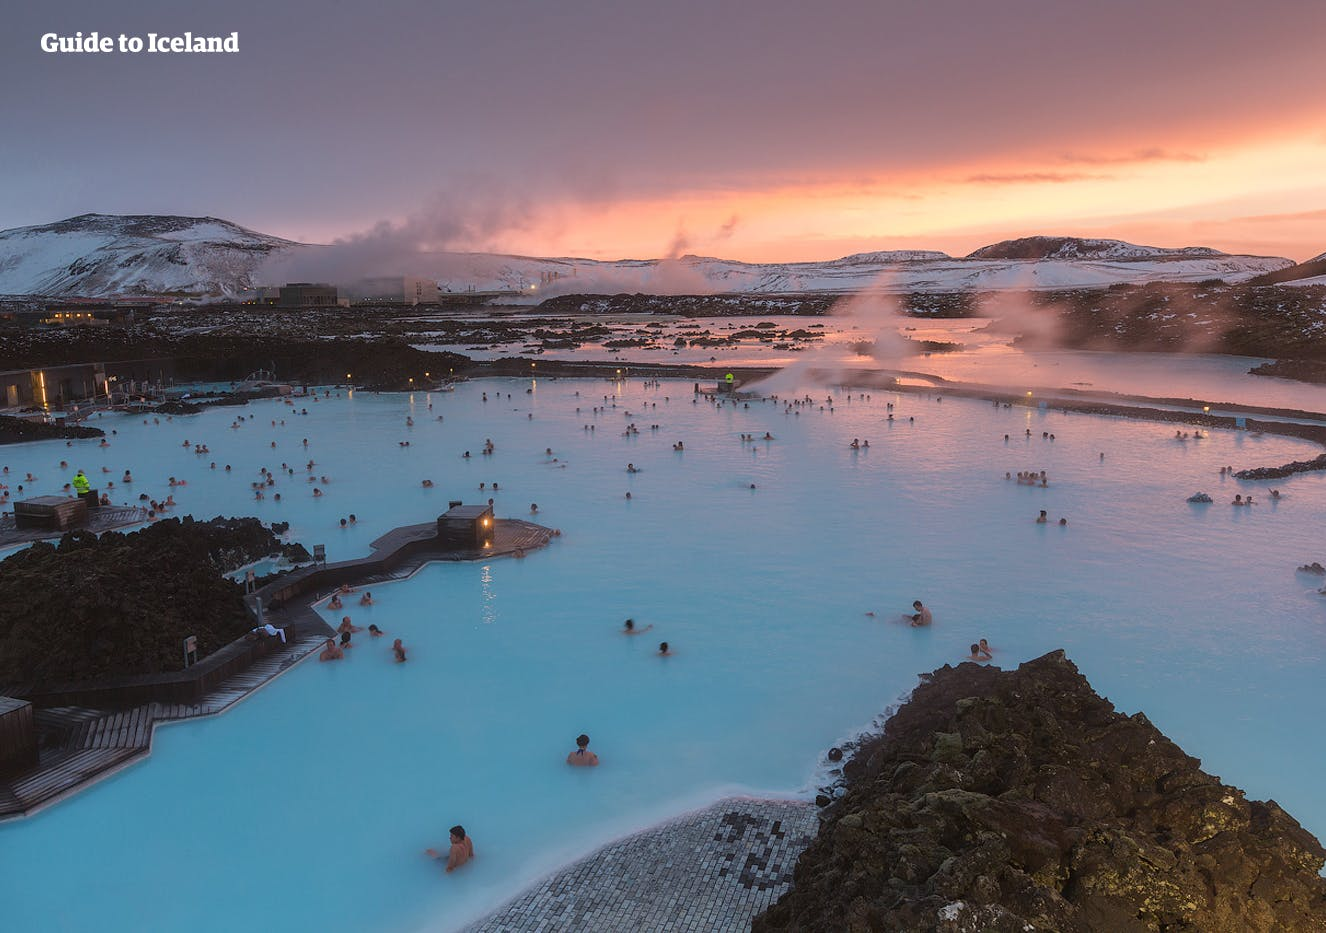 The Blue Lagoon is one of Iceland's most famous visitor attractions.